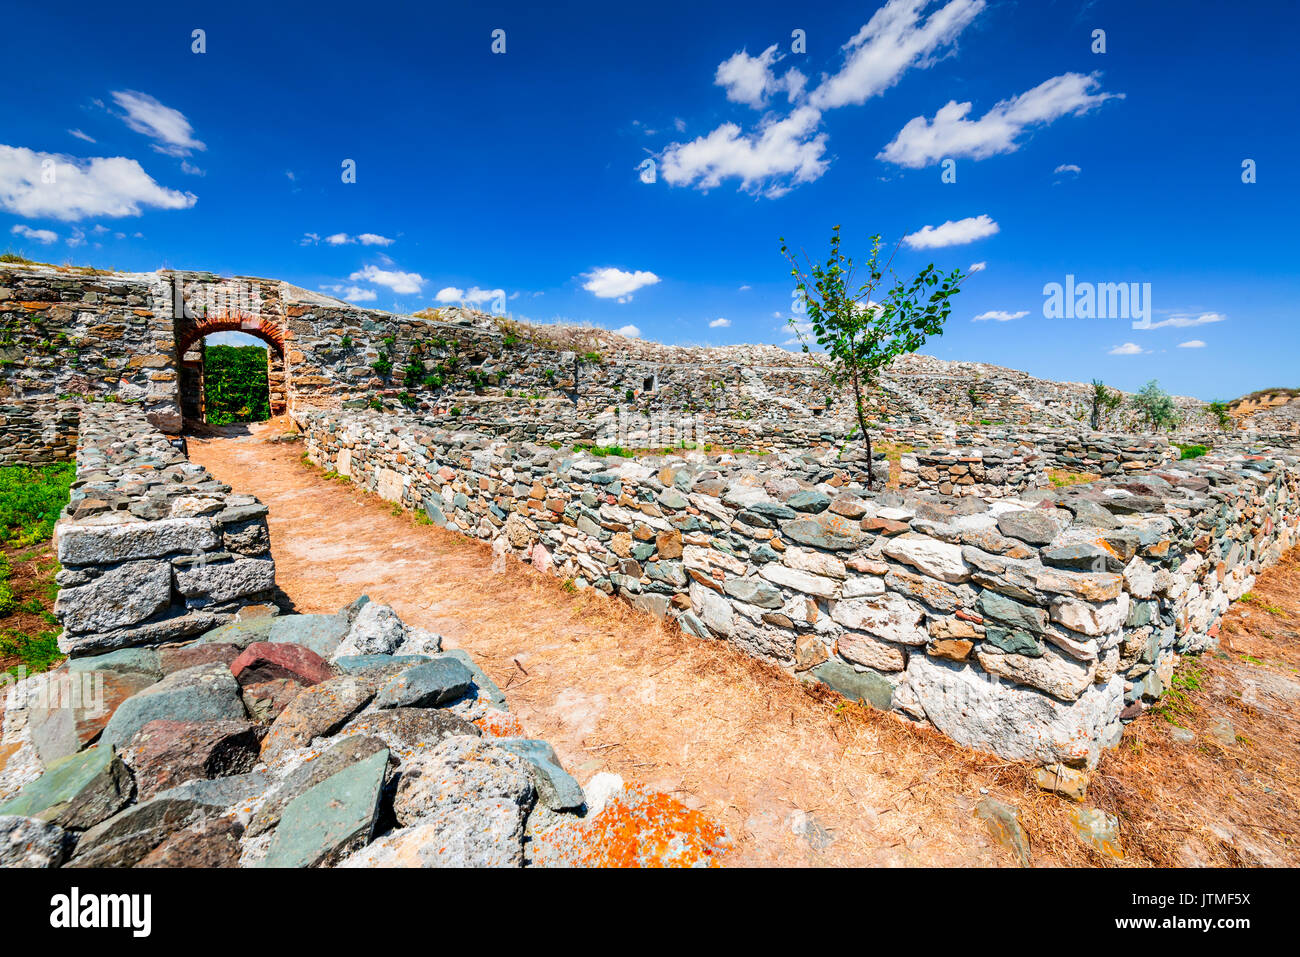 Histria, Romania - Ruins of ancient Greek colony city of Istros established by Milesian settlers. Dobruja, Black Sea. - Stock Image